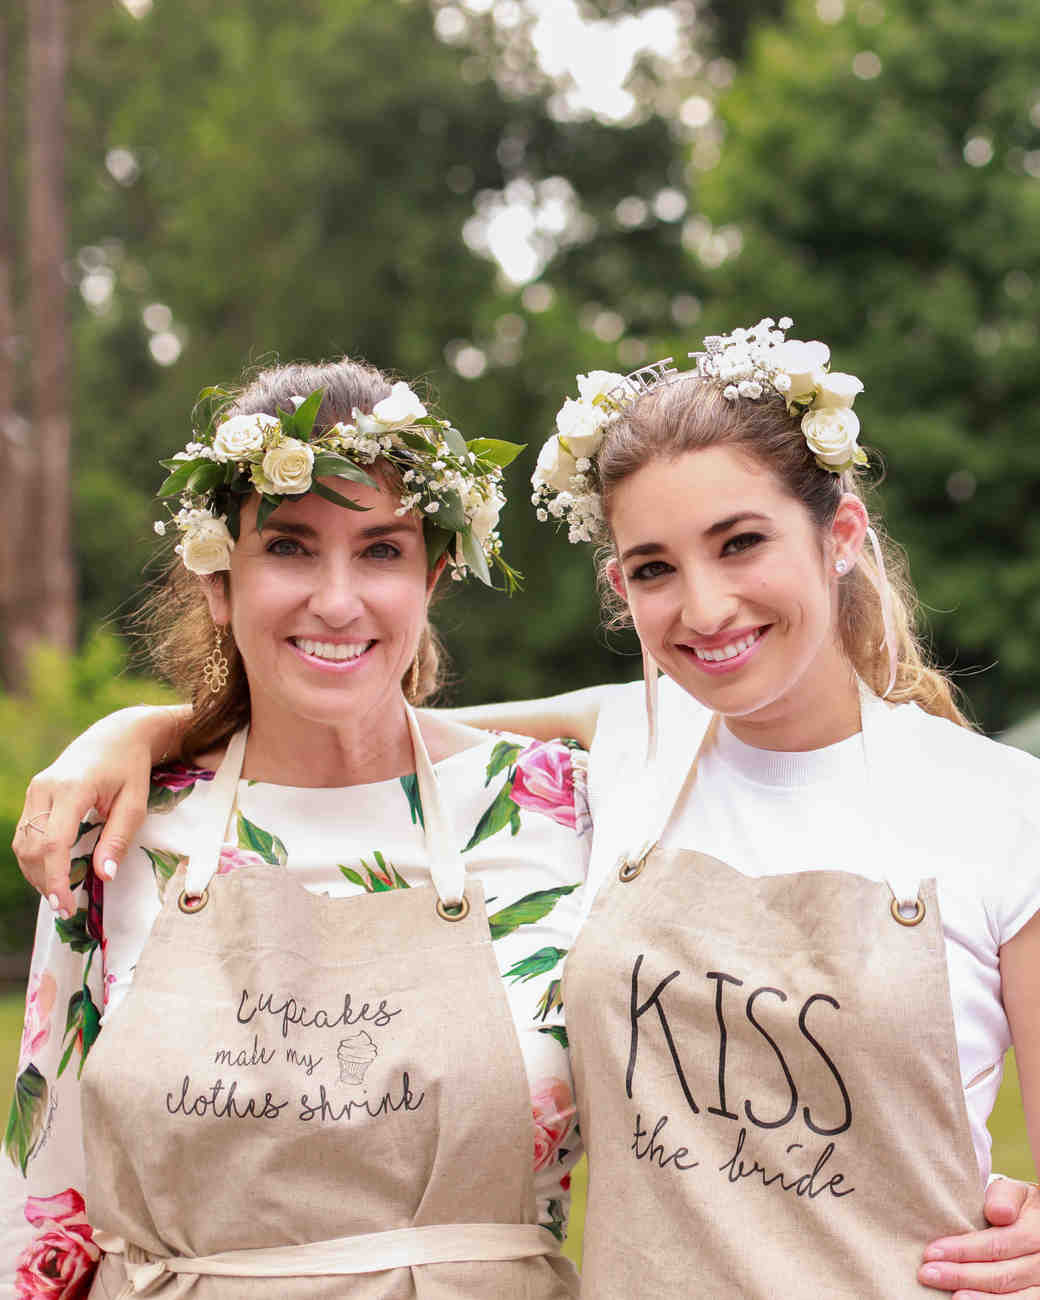 bridal shower mother bride outdoors apron flower crowns